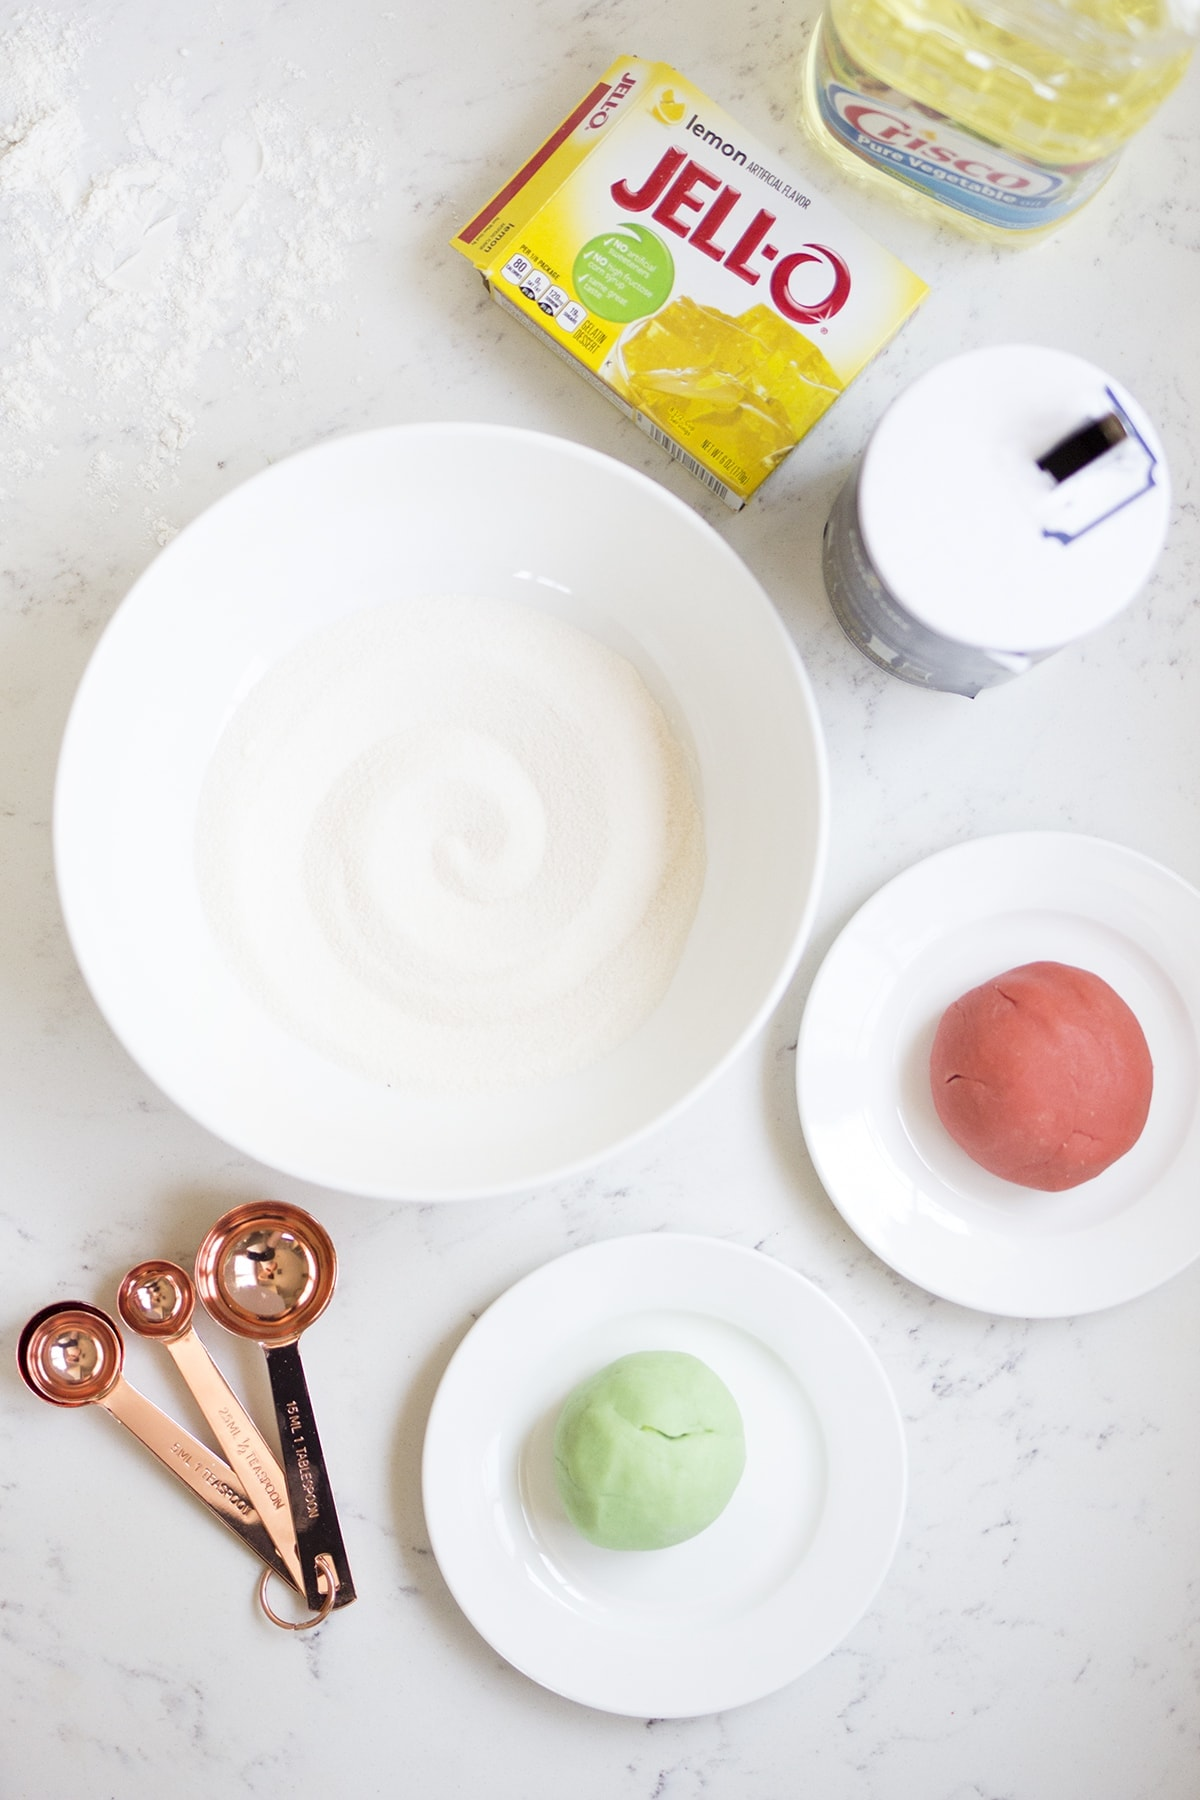 How to Make Homemade Jello Playdough